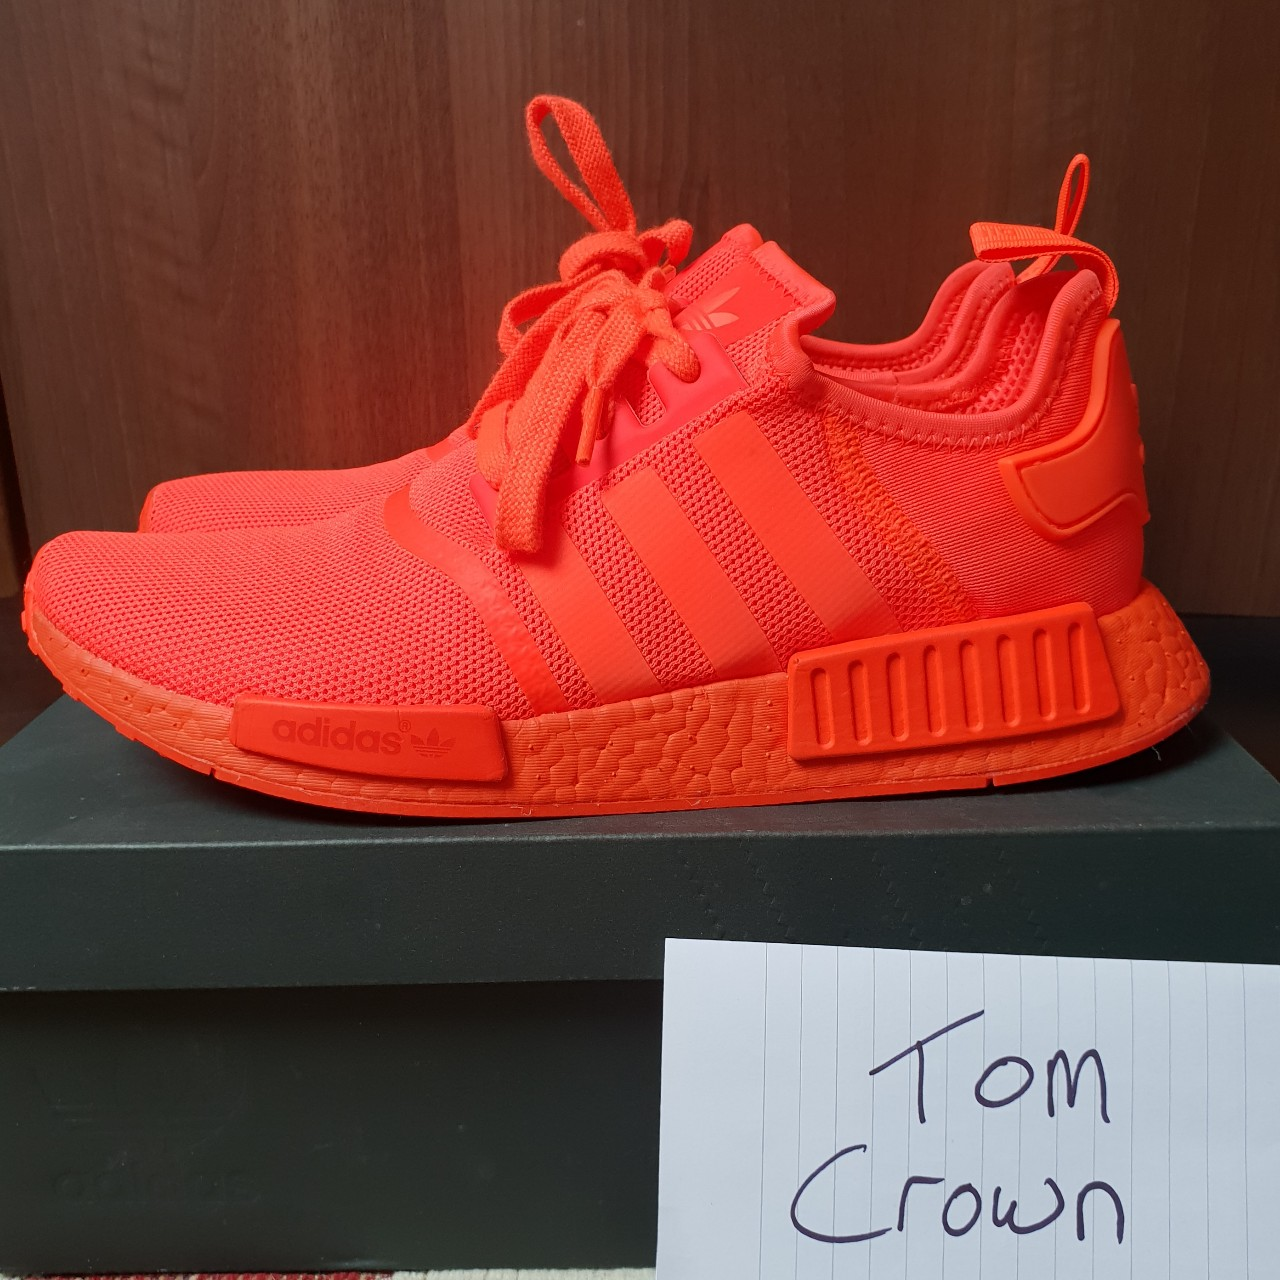 Adidas Nmd R1 Solar Red Uk10 5 100 Depop